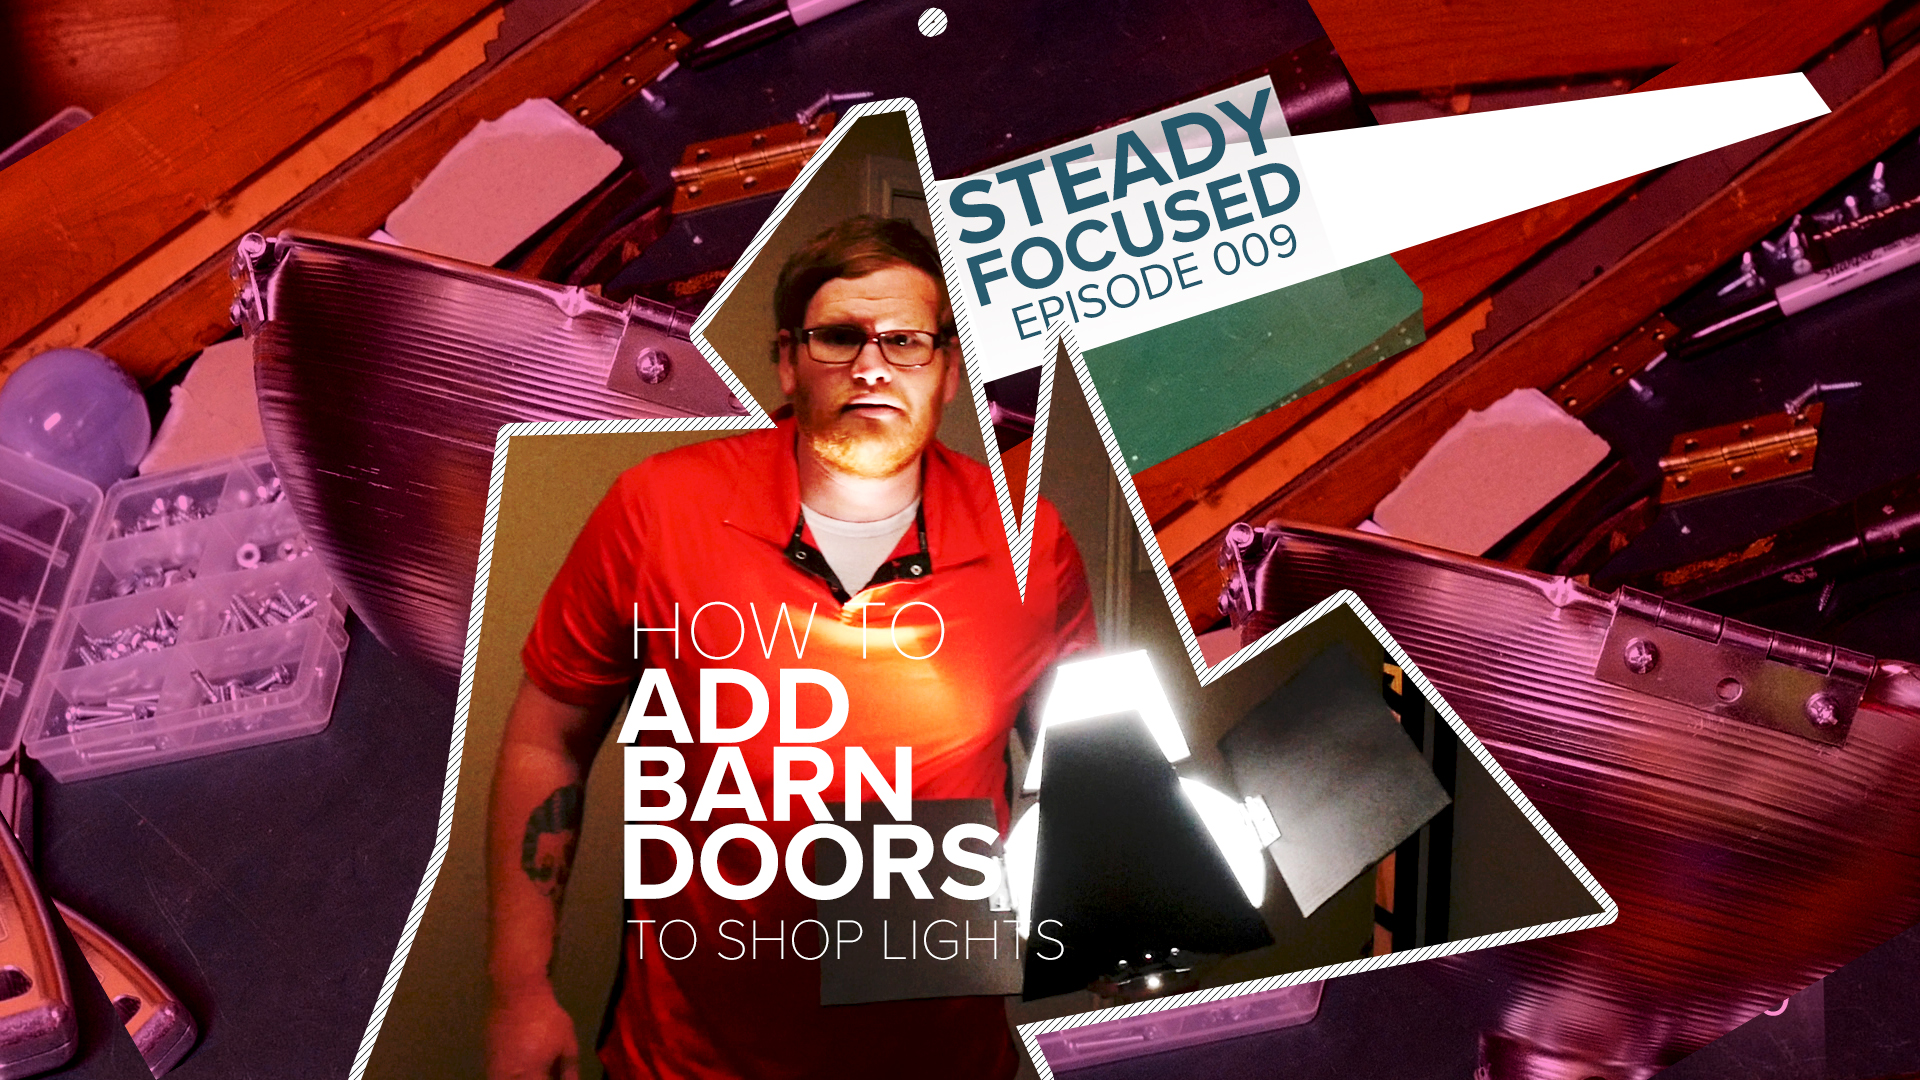 How to Easily Add Barn Doors to YOUR canister shop lights! Steady Focused EP 009